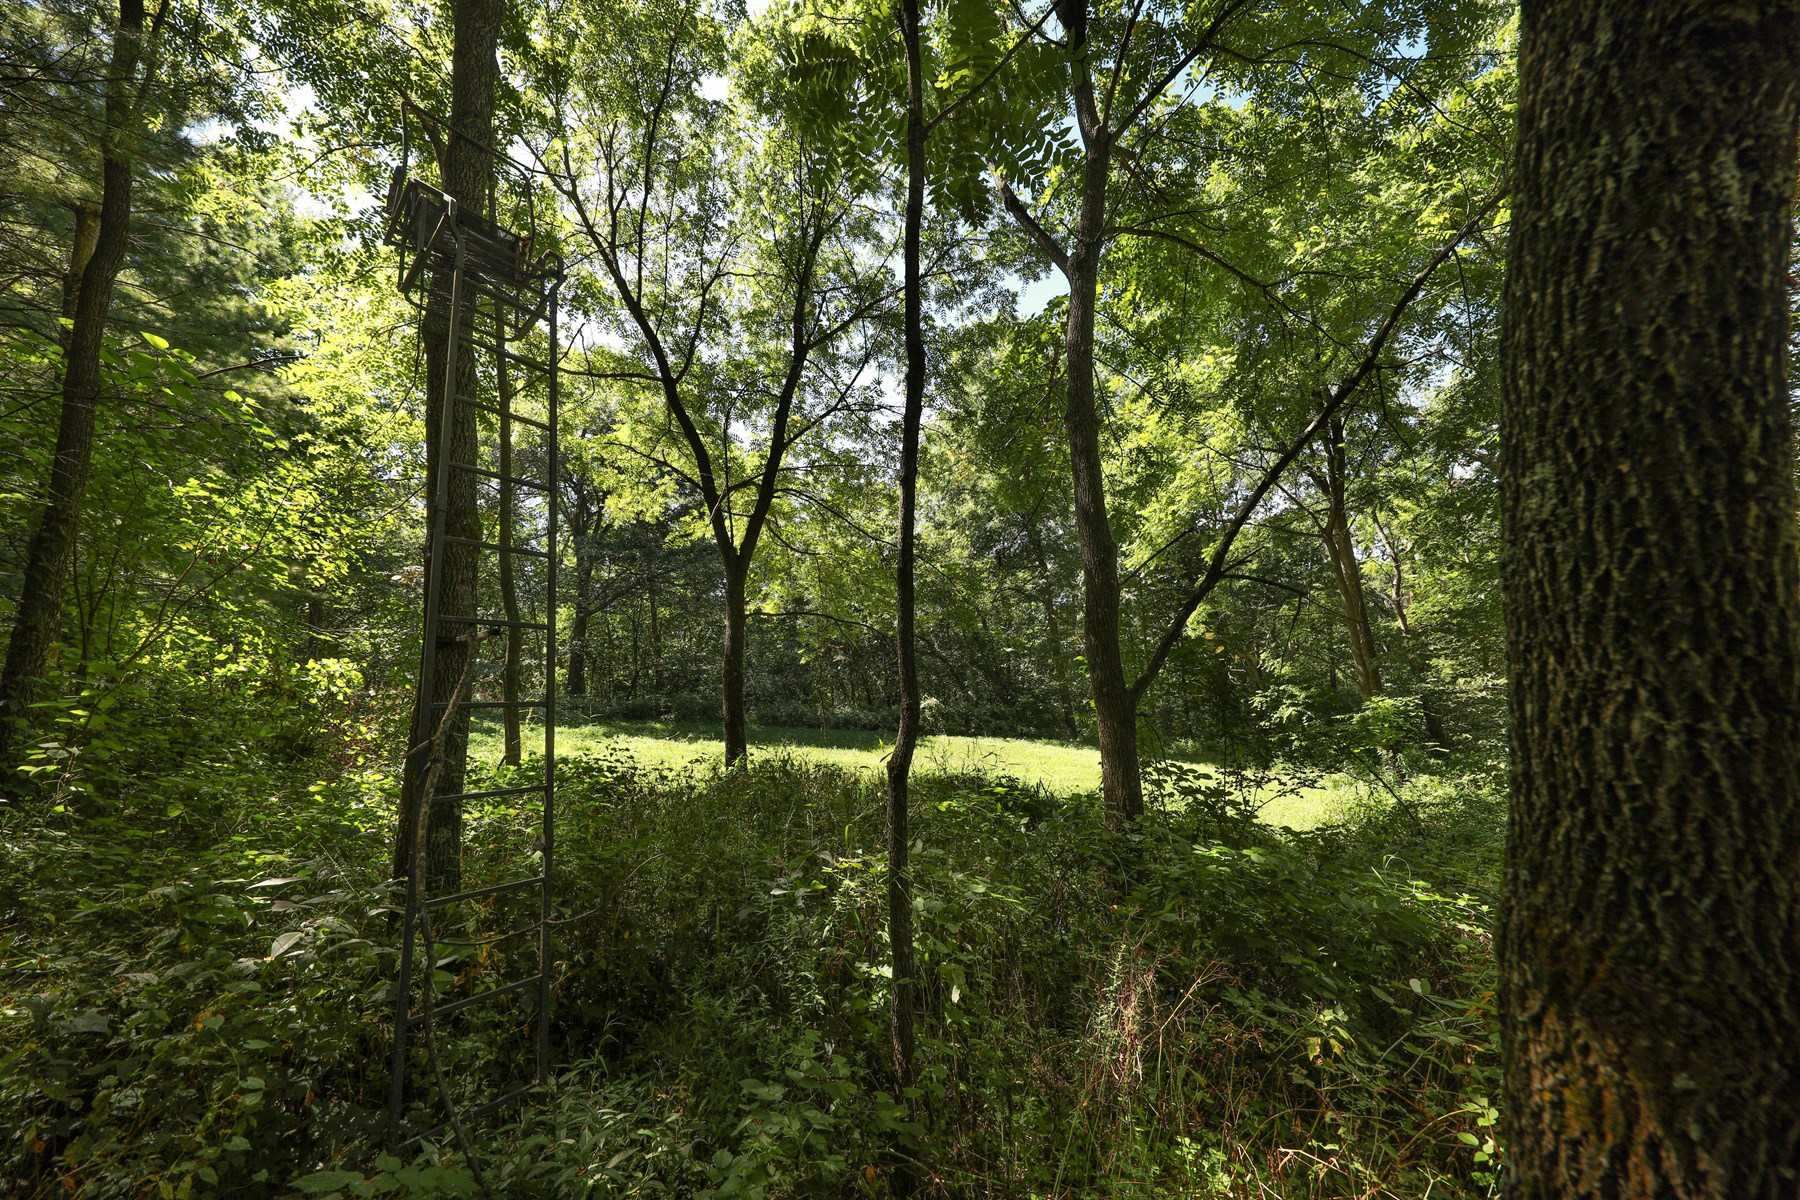 Land For Sale in Southwest Wisconsin